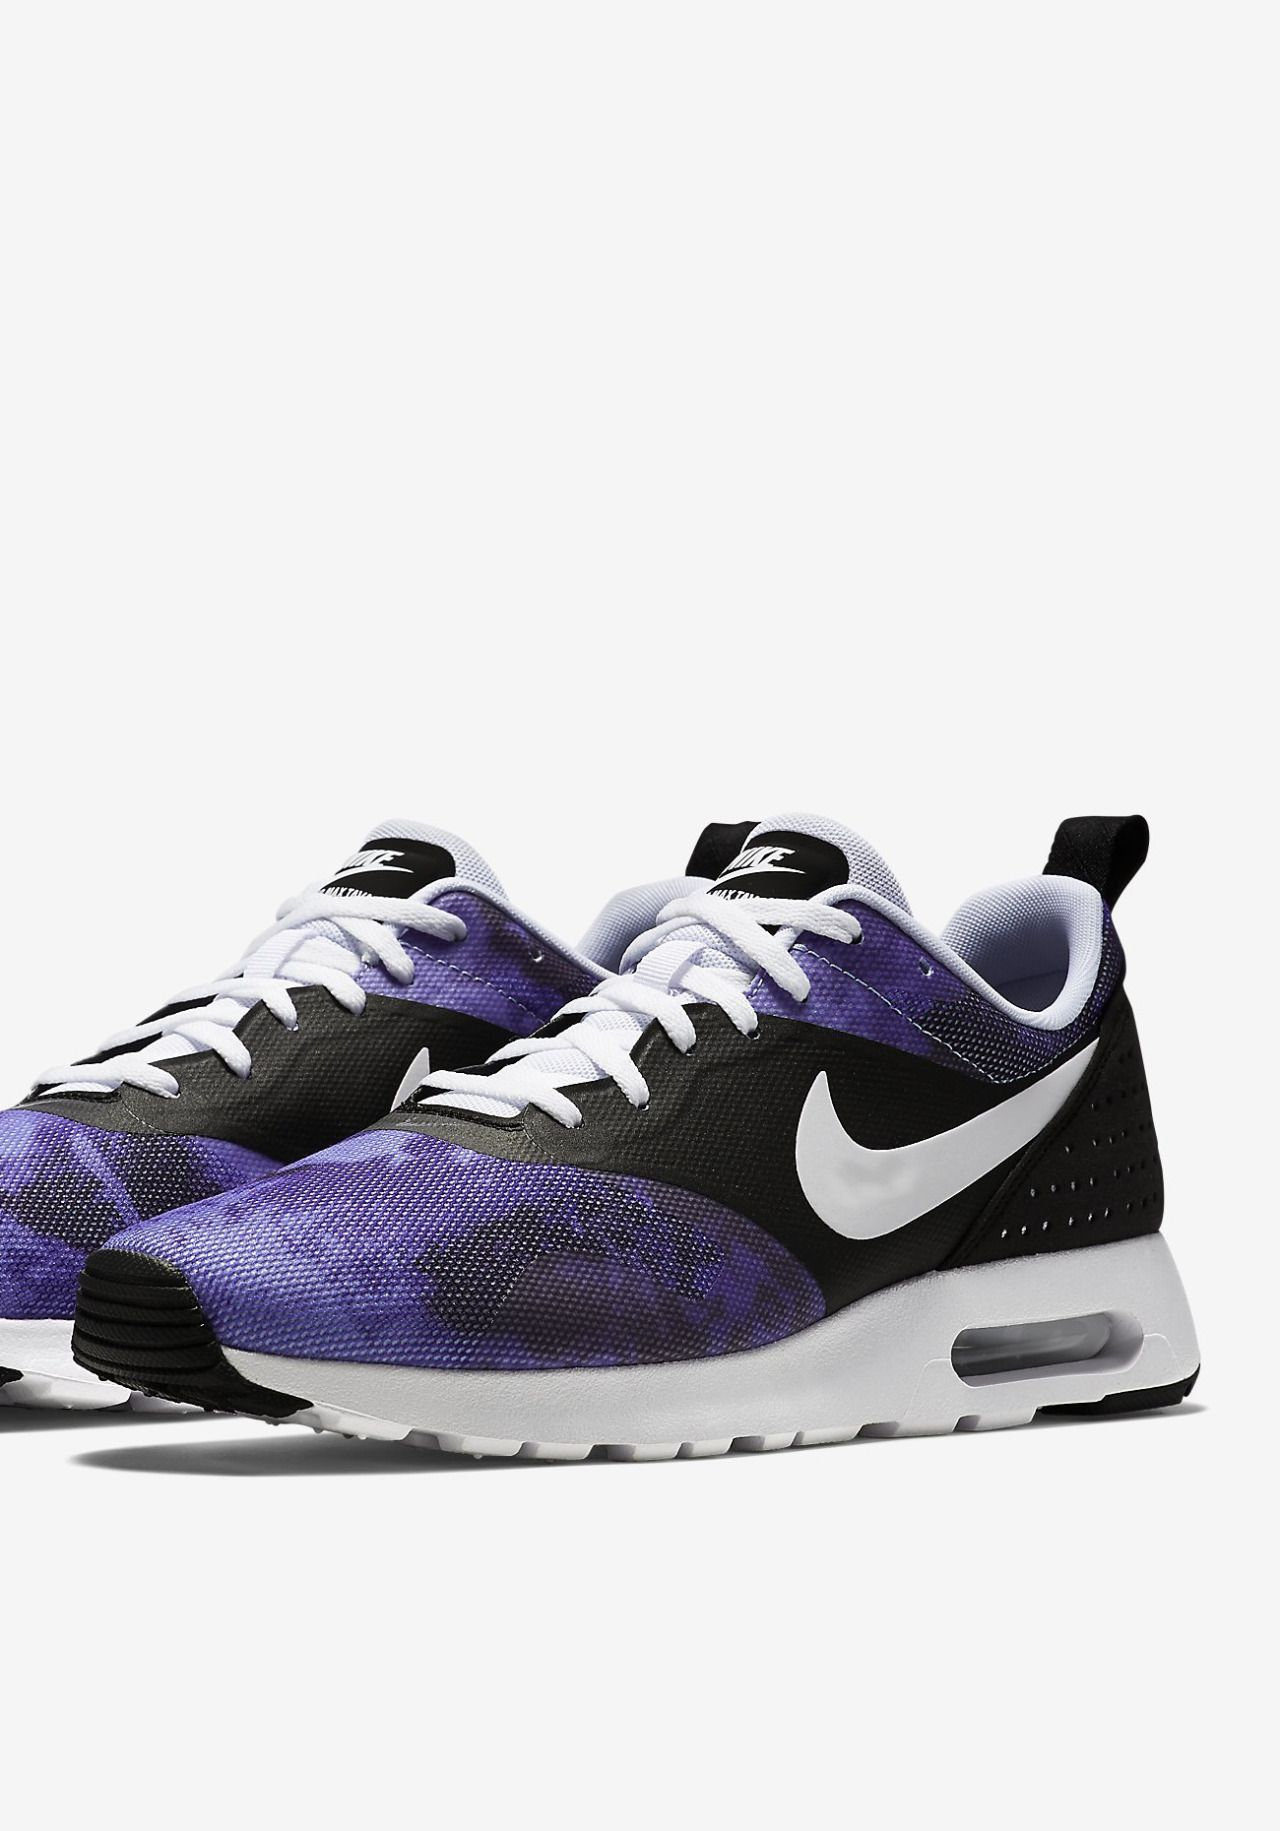 new product abd83 60225 Air Max Tavas SD (via Kicks-daily.com)